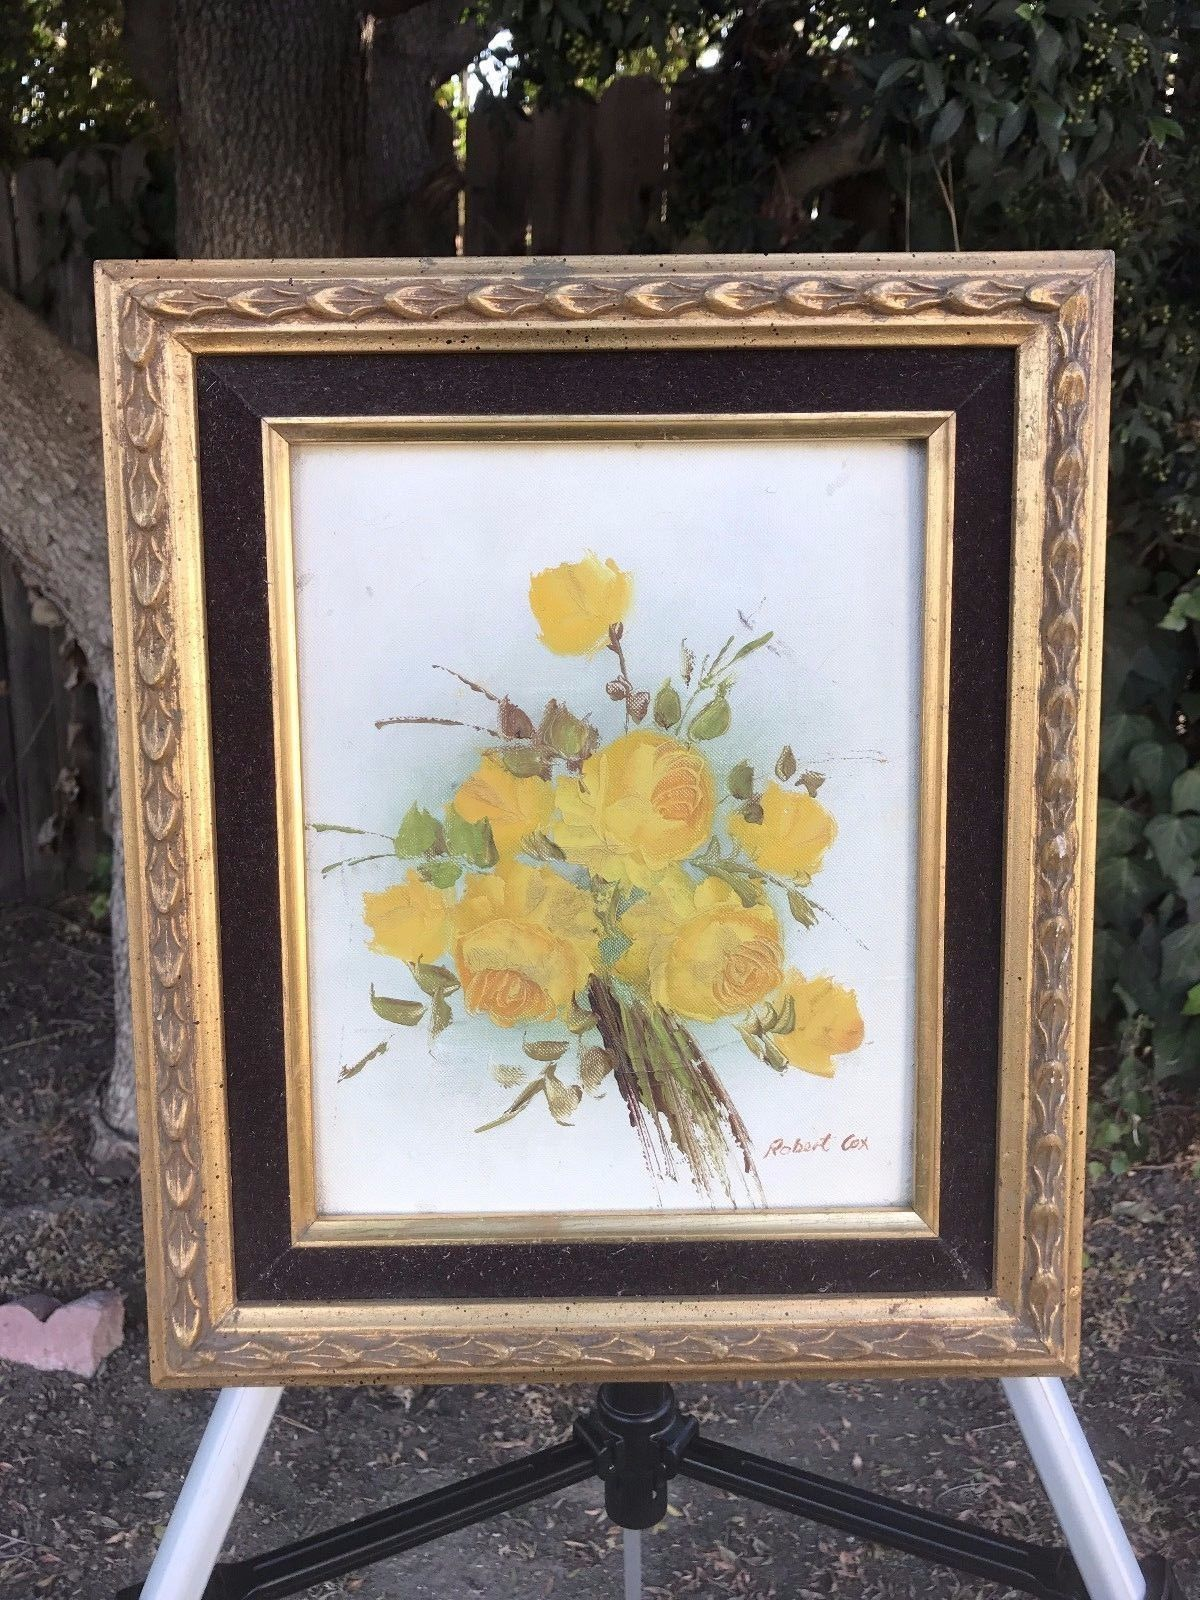 ROBERT COX Original Floral Oil Painting on Board 1970s Vintage Signed & Framed